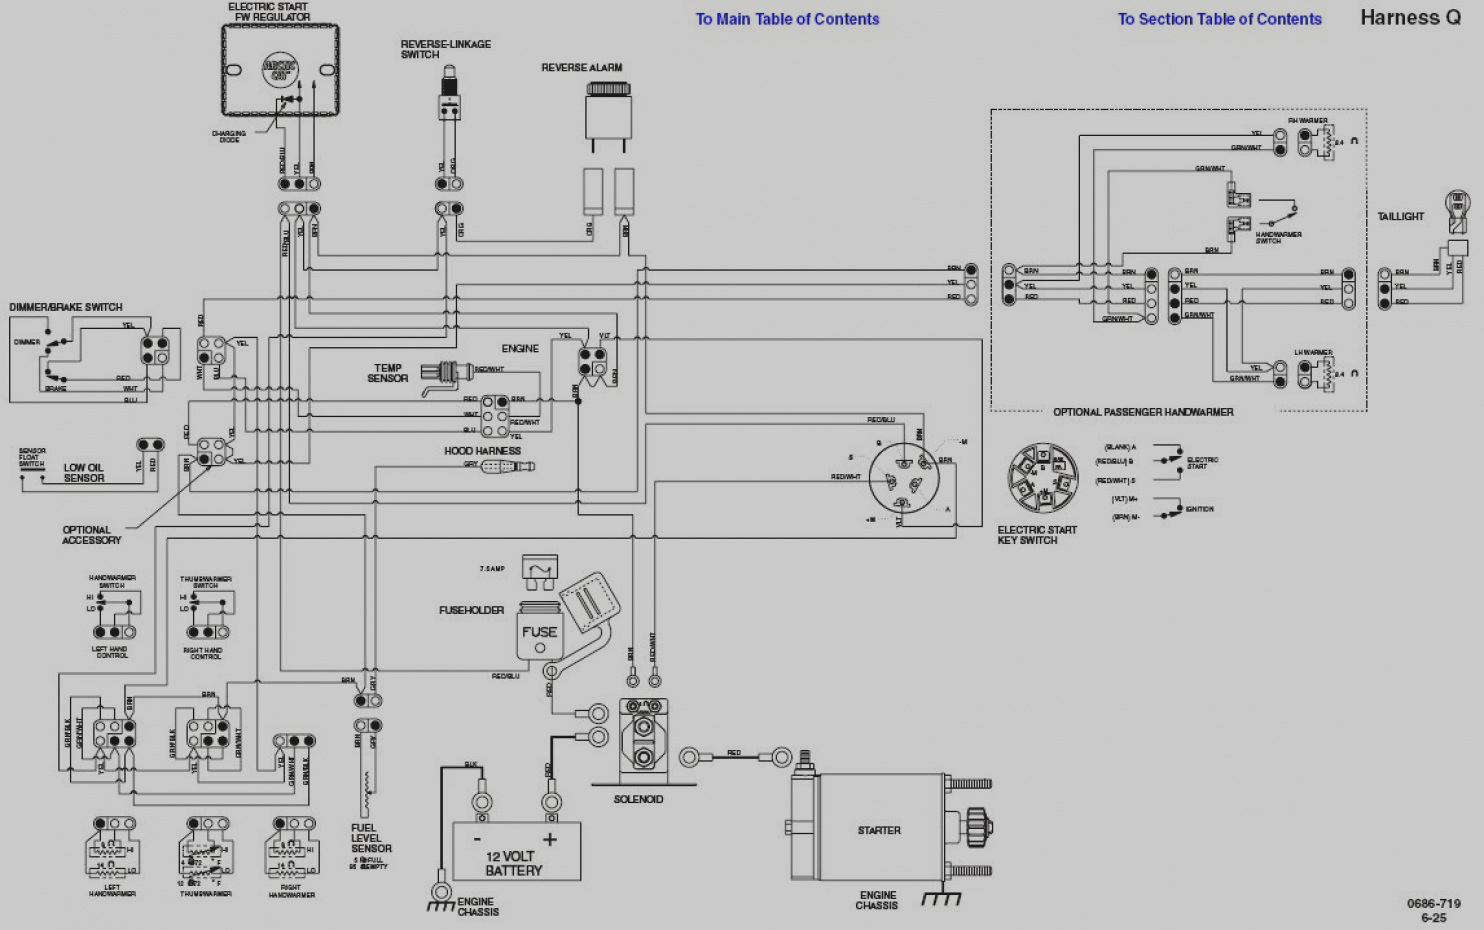 2005 Polaris Ranger Xp 700 Wiring Diagram - Wiring Diagrams Sourceaisdro.